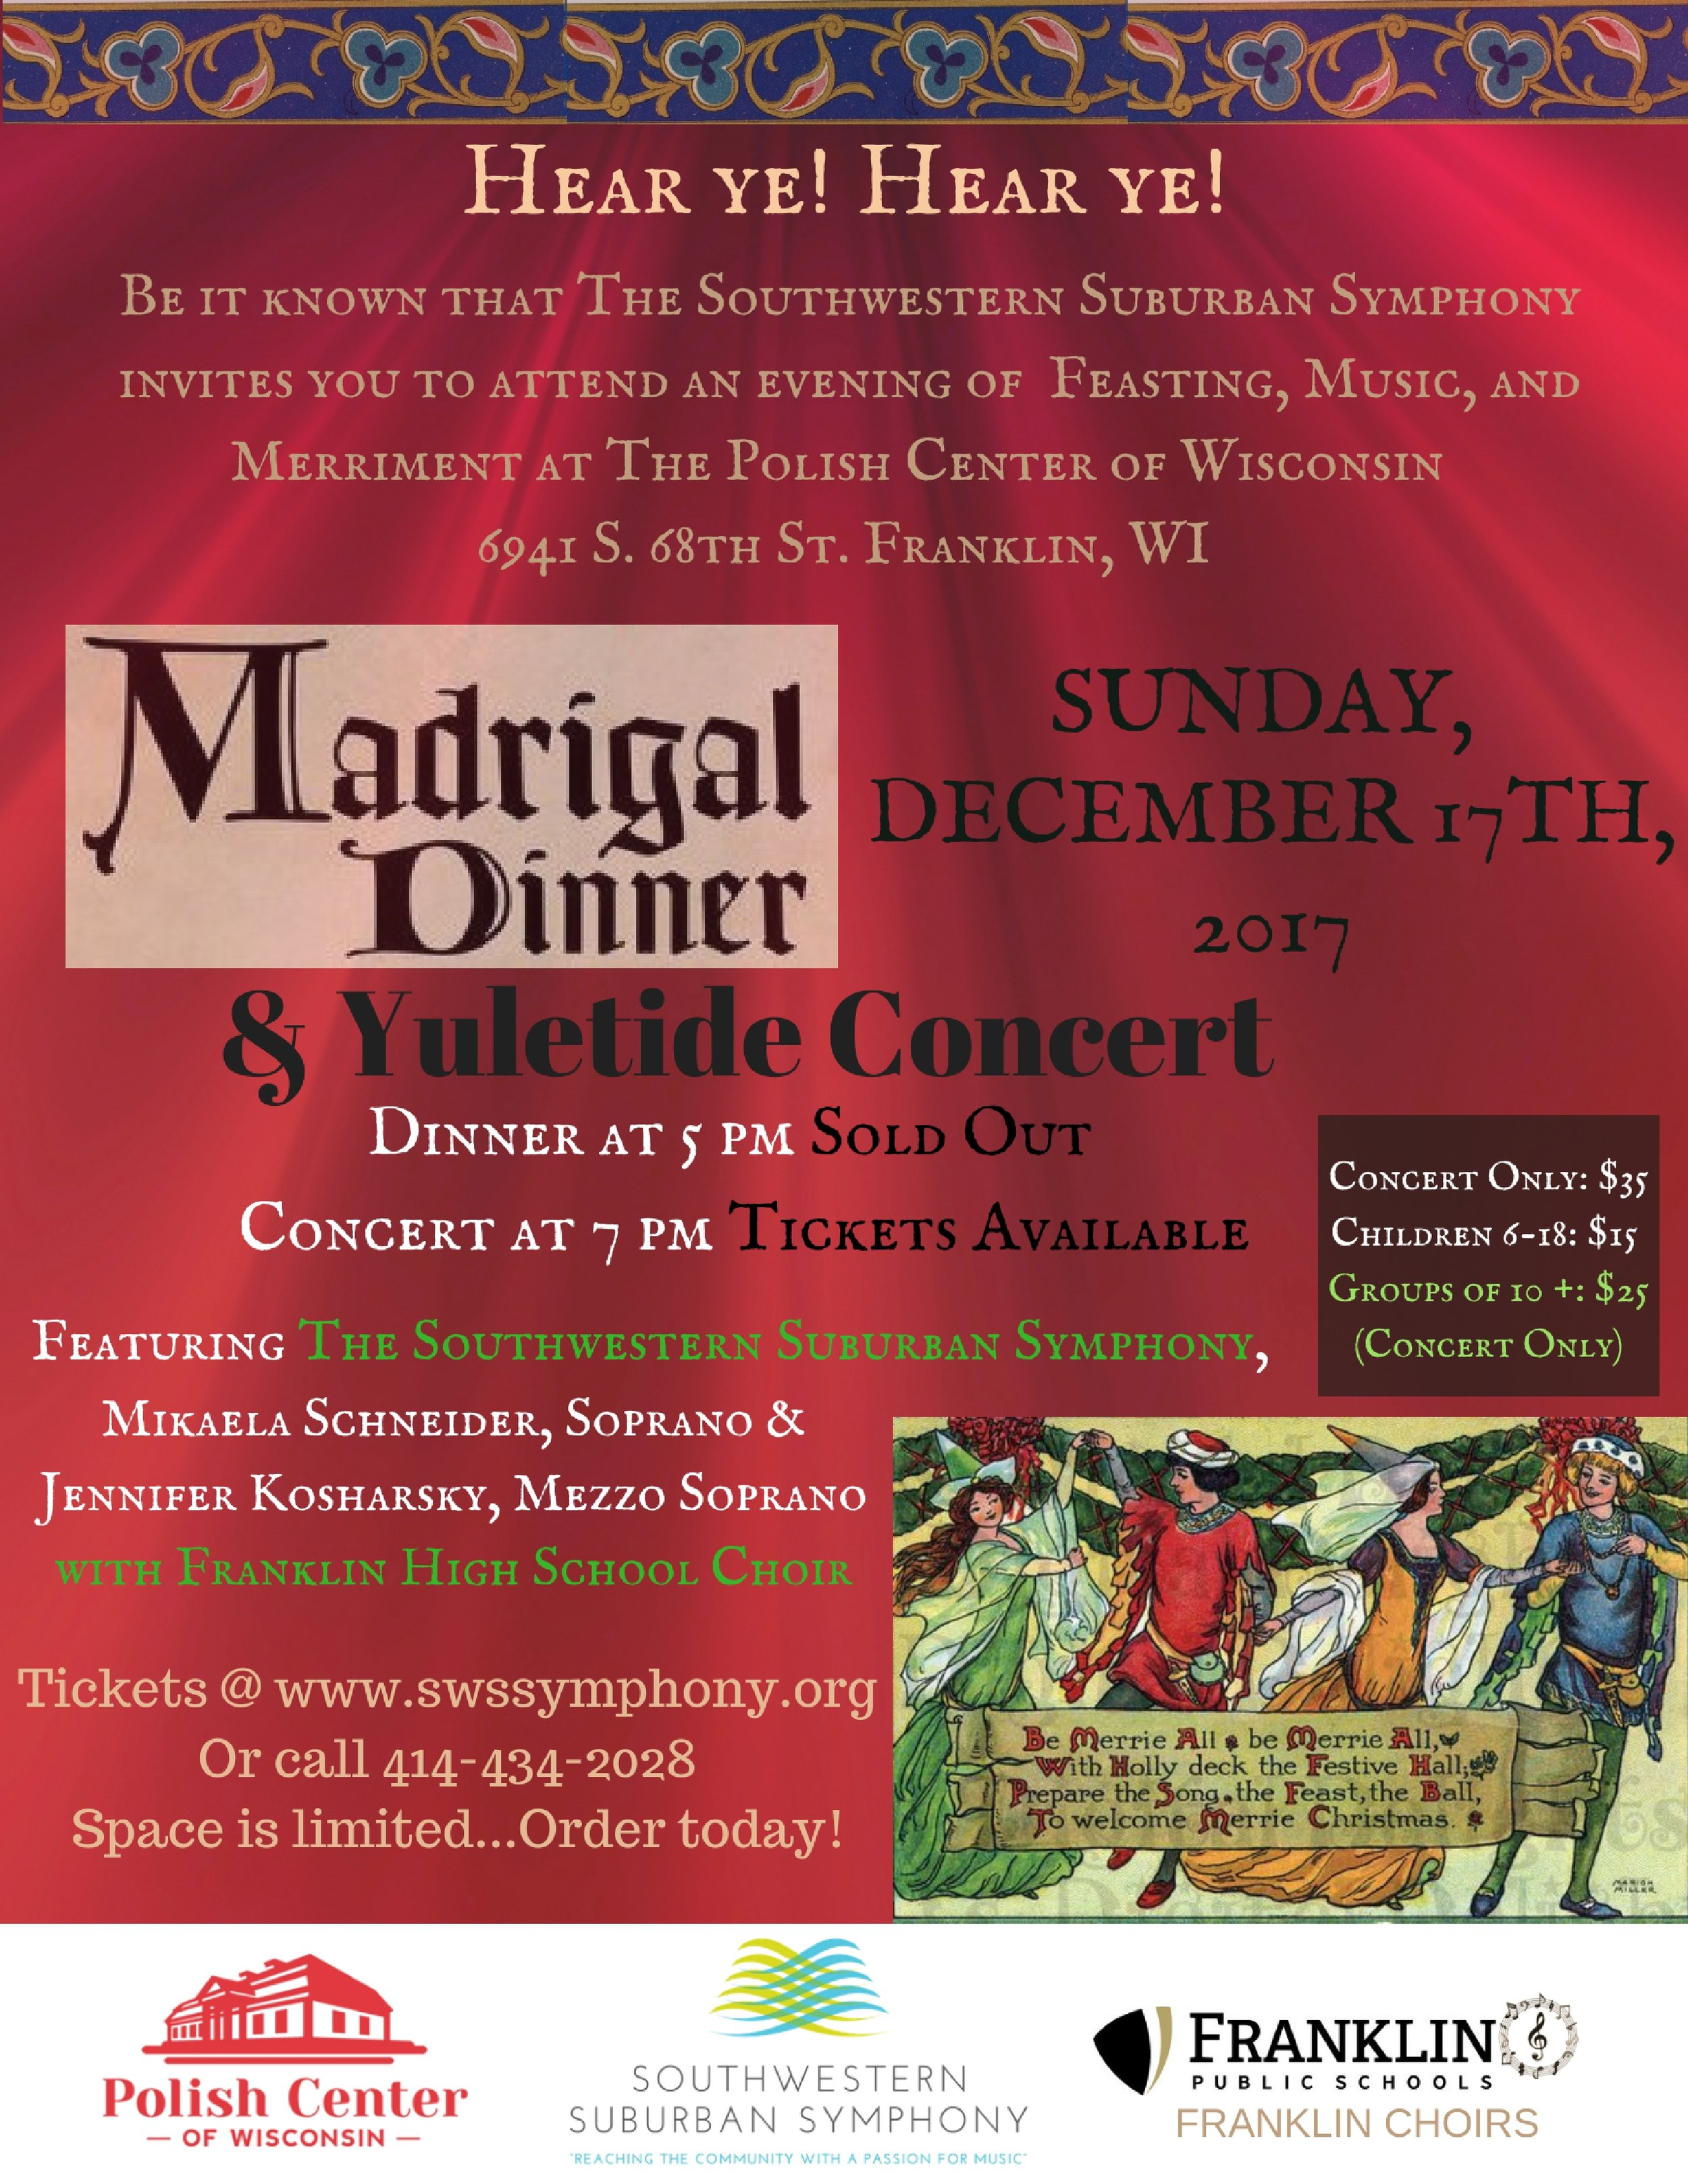 Thank you to all who shared the merriment with us at our first Madrigal Dinner and Yuletide Concert! It was a great success and we hope to see you next year! - Information and Ticket ReservationD̶I̶N̶N̶E̶R̶ ̶a̶t̶ ̶5̶:̶0̶0̶P̶M̶ ̶ | CONCERT at 7:00PMD̶I̶N̶N̶E̶R̶ ̶&̶ ̶C̶O̶N̶C̶E̶R̶T̶:̶ ̶$̶60 ̶C̶H̶I̶L̶D̶R̶E̶N̶ ̶6̶-̶1̶8̶:̶ ̶$̶3̶5̶CONCERT ONLY: $35, CHILDREN 6-18: $15, UNDER 6: FREEReserve your tickets through our online box office, www.swssymphony.org. You may also call 414-434-2028.Group Rates for 10+ Available by calling.madrigal dinner menuSunday, December 17th, 2017. Dinner is at 5PM and the Concert is at 7PMMenu Choices:Tendre Rybb de Beouf with Sauce de Madyra OR Breast of Roast Fowl with Sauce ApricotteServed with accoutrement of Letuse Sallade with Berries of Cran, Feta Fromage and Pykans, Stryng Bynnes Almondyne, Candyed Carrot and Twyce Roasted BotataChristmesse Puddyng and Spyked (or Unspyked) Wassail CoppesCashe Bar Open to cheer the Masses throughout the EveningChildren's Menu:Roast Fowl Tendres, Pommes Frites*, Vegetable and Christmesse Puddyng * French Fries